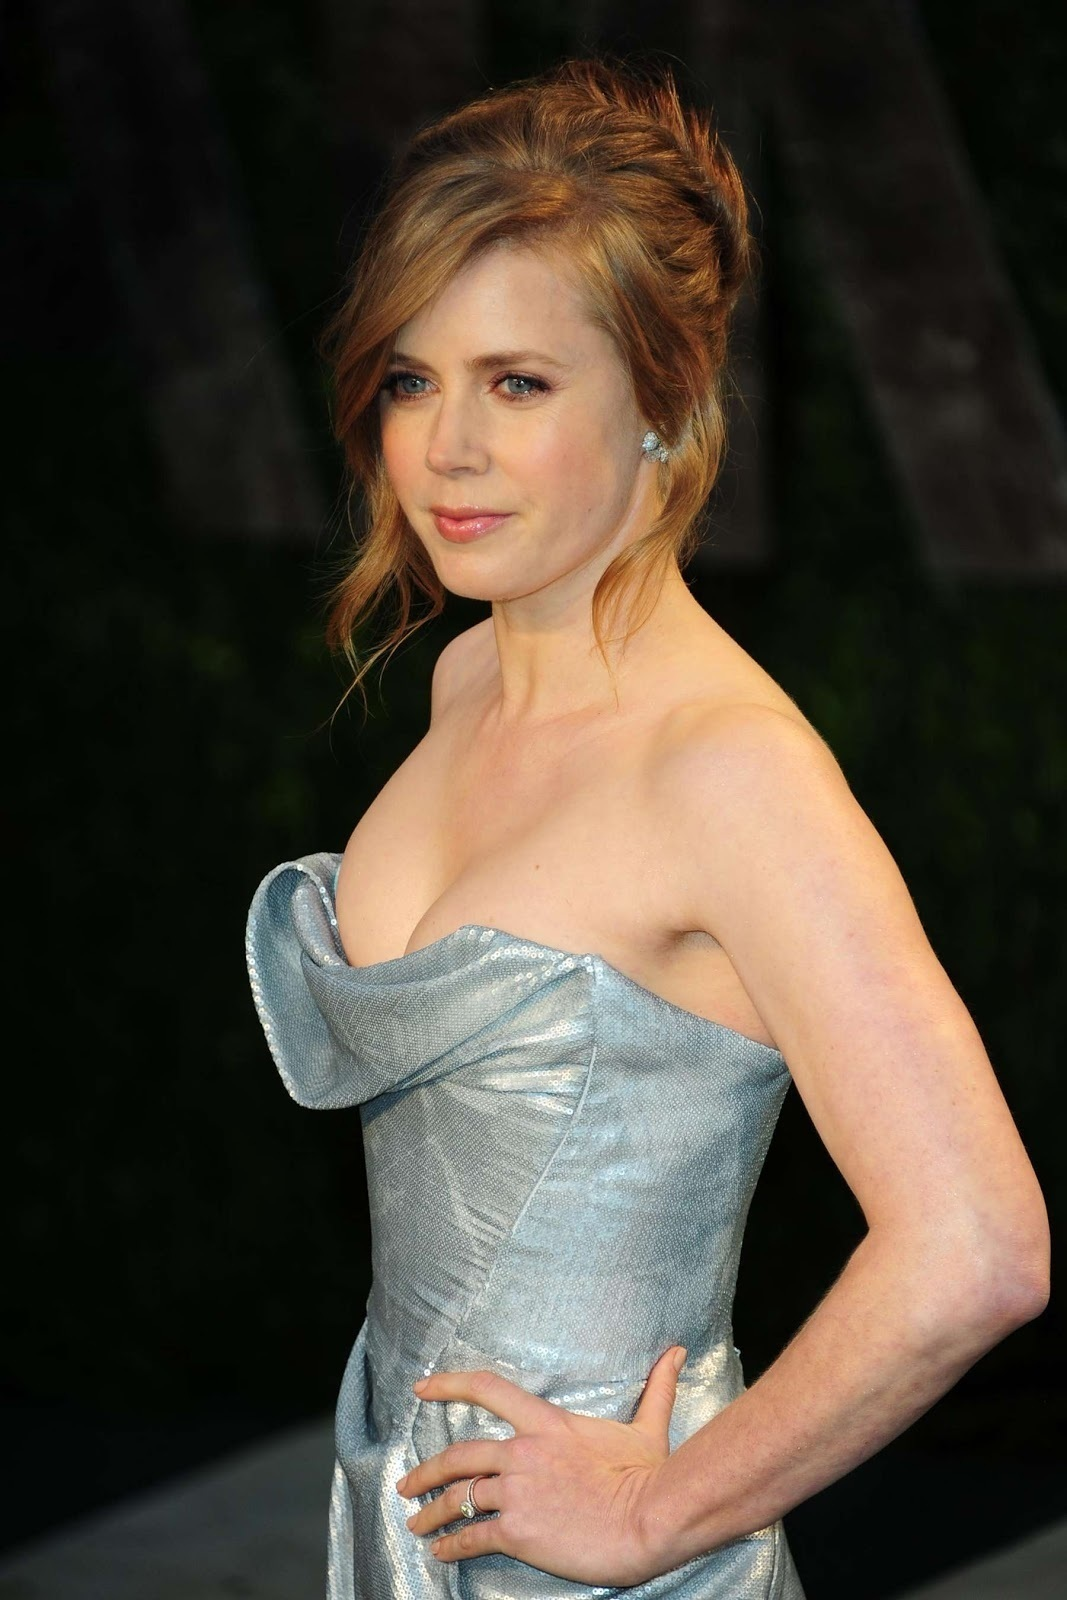 Amy Adams Cleavage At Vanity Fair Oscar Party Bikini Abdf Bdb Bd Large Night At The Museum